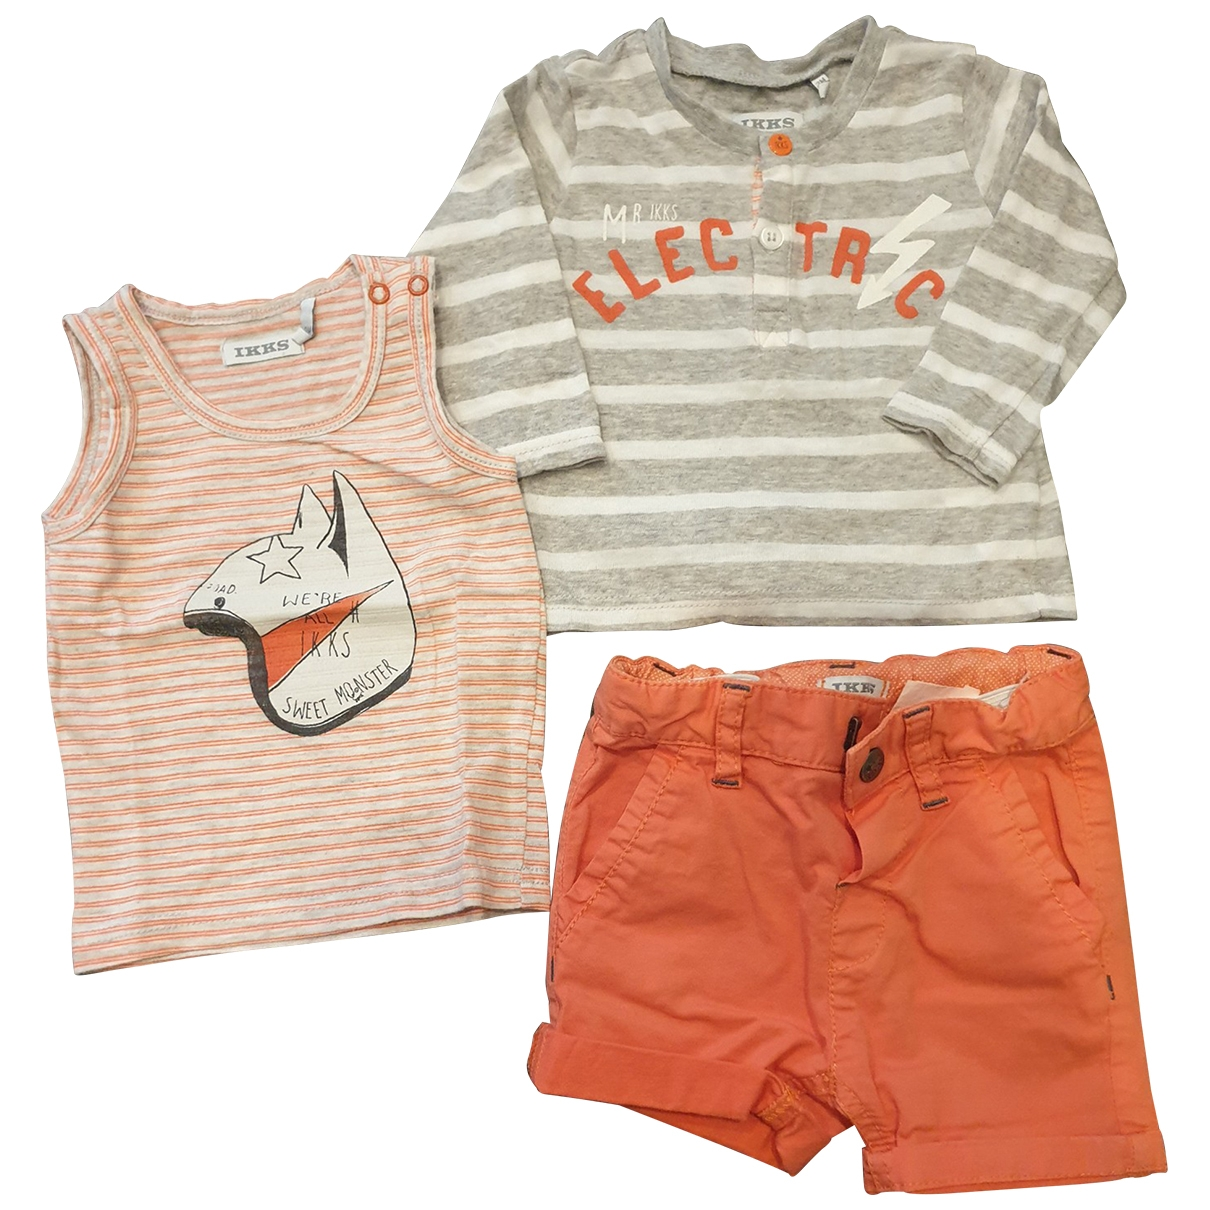 Ikks \N Orange Cotton Outfits for Kids 3 months - up to 60cm FR